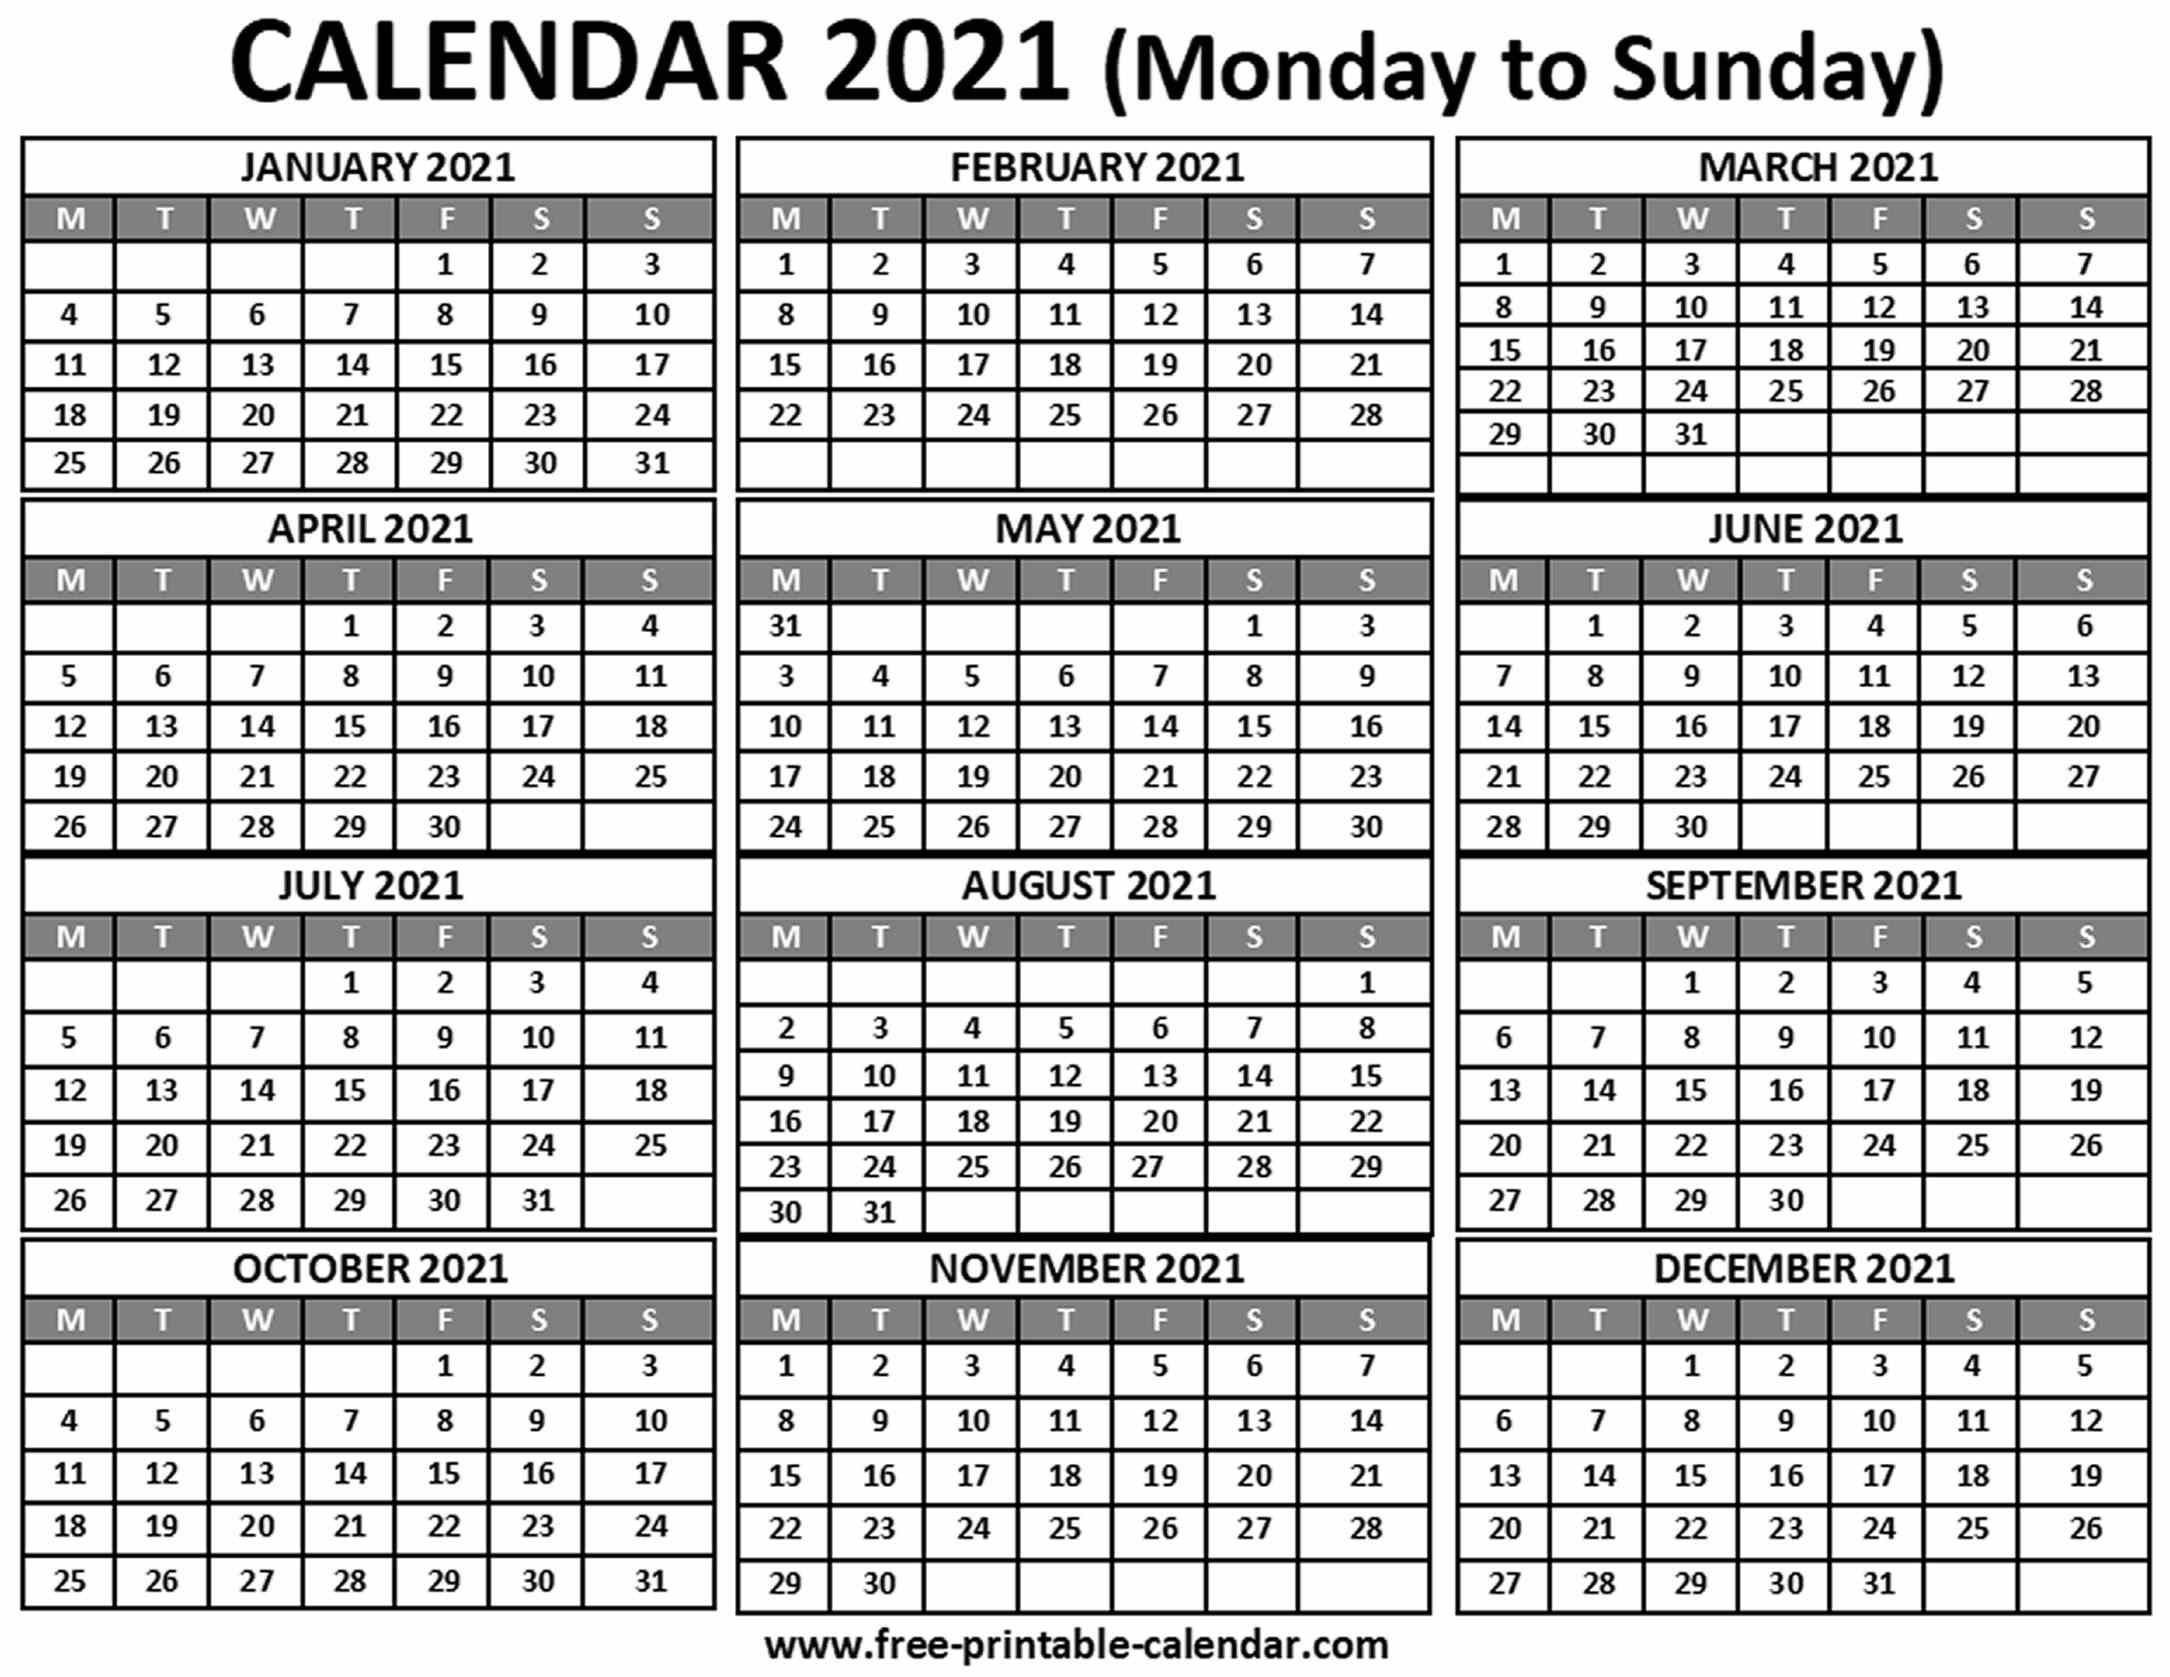 2021 Calendar - Free-Printable-Calendar regarding Free Printable Pocket Calendar 2021